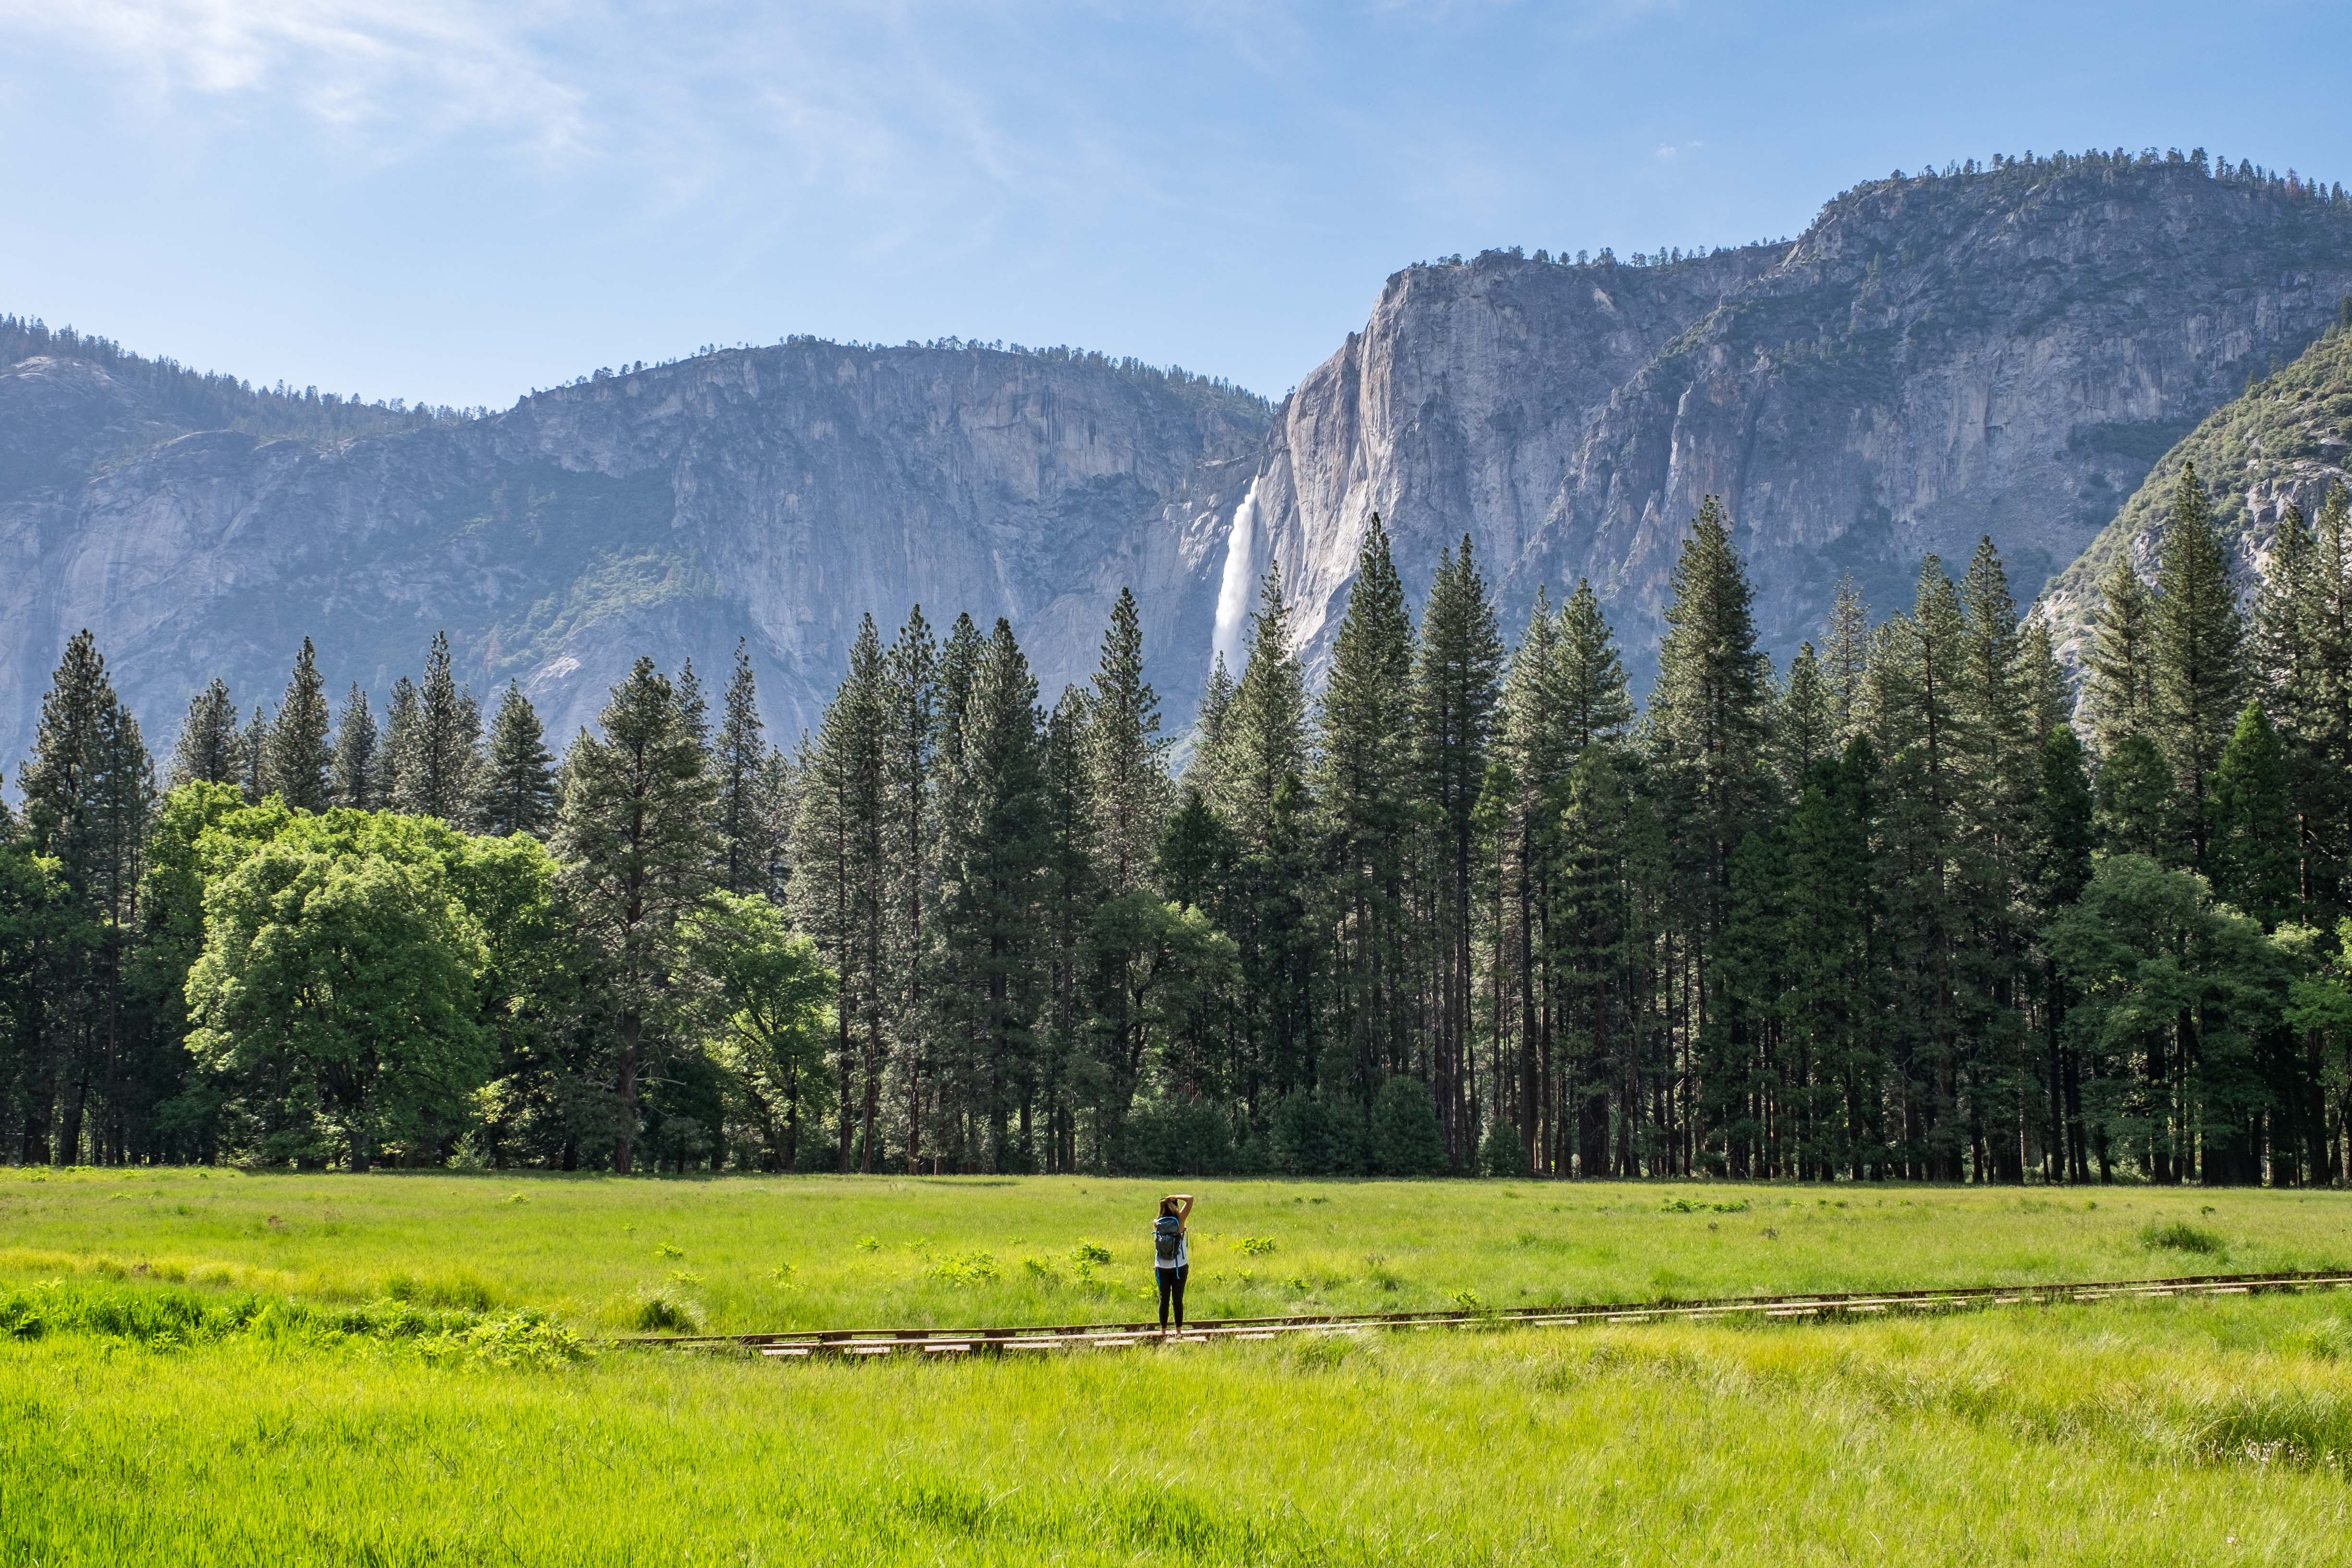 yosemite national park dating site Yosemite falls, merced river (credit: chris hepburn/istock) 4 at first, the national park did not include the yosemite valley and its iconic landmarks.